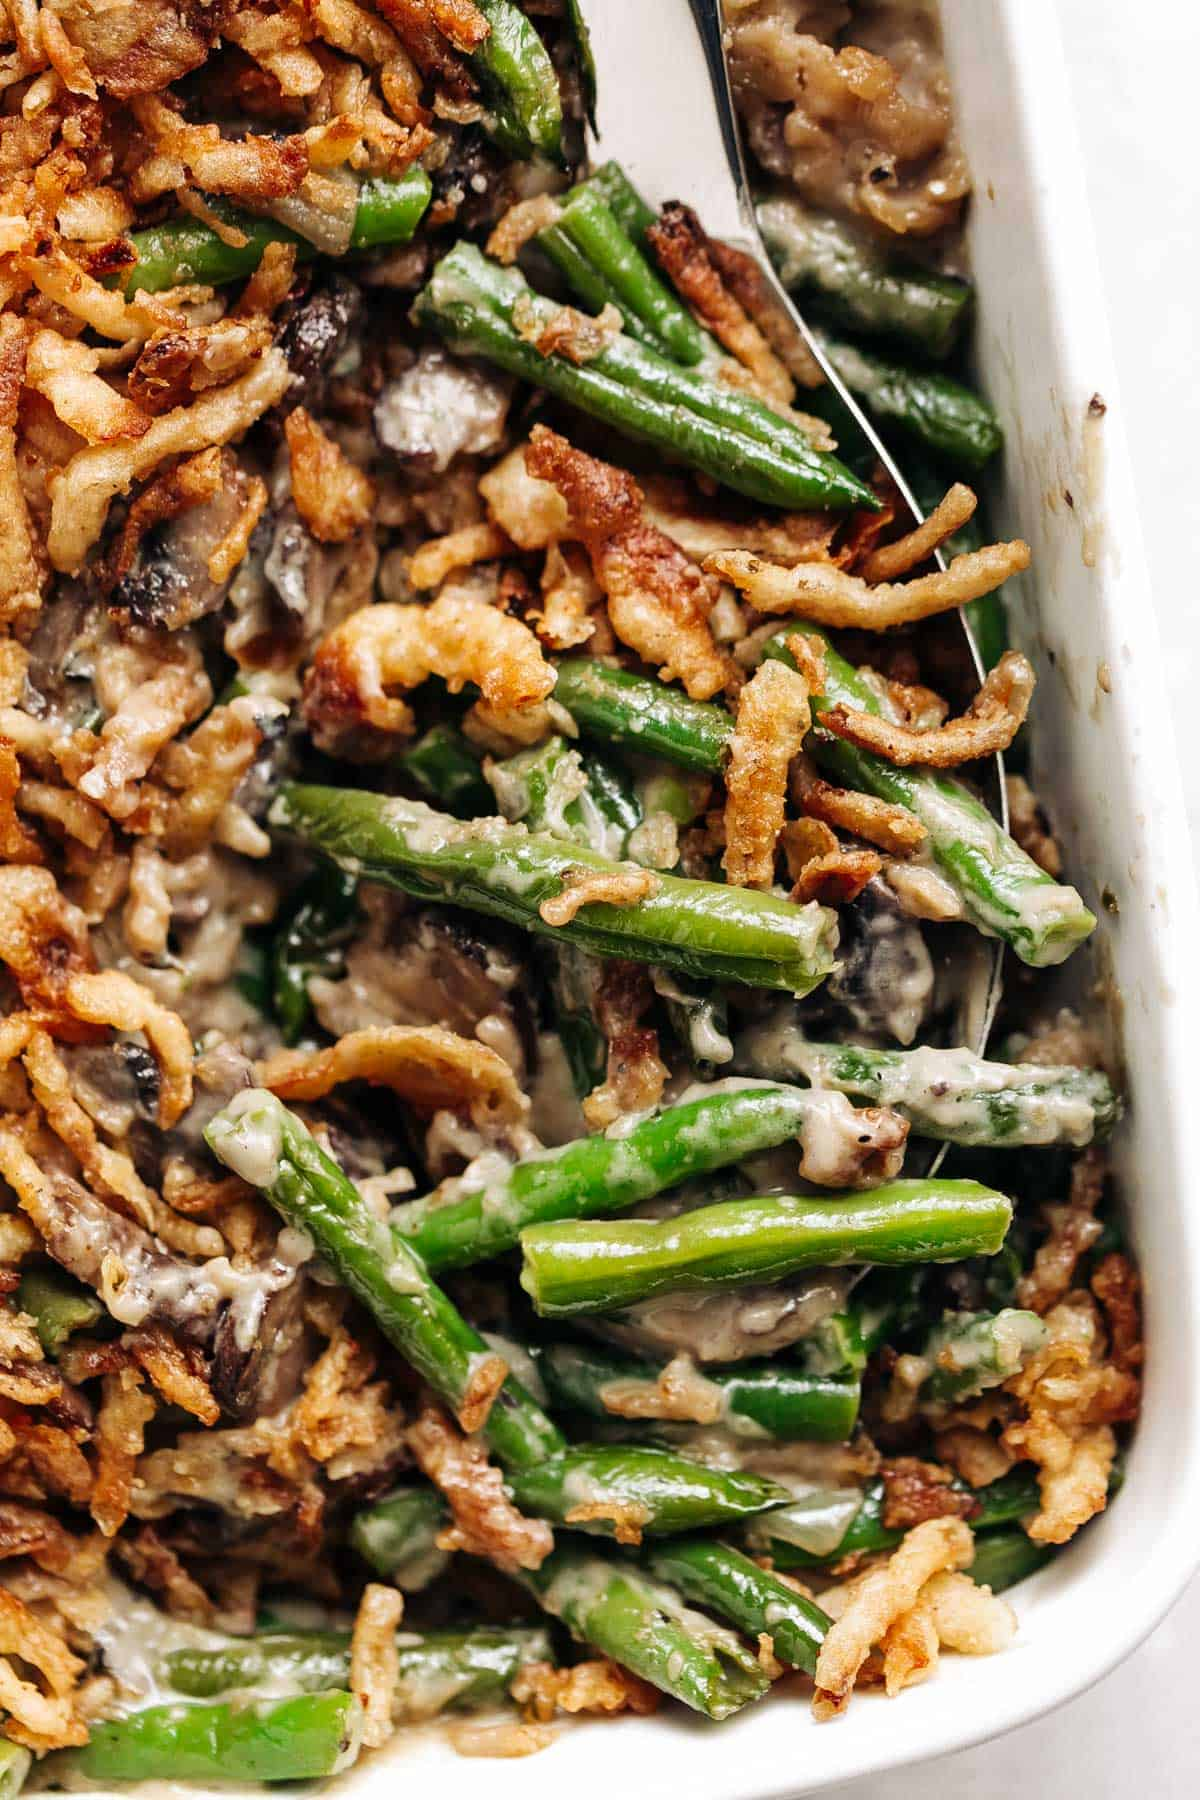 A ladle of green bean casserole fresh in a baking dish.